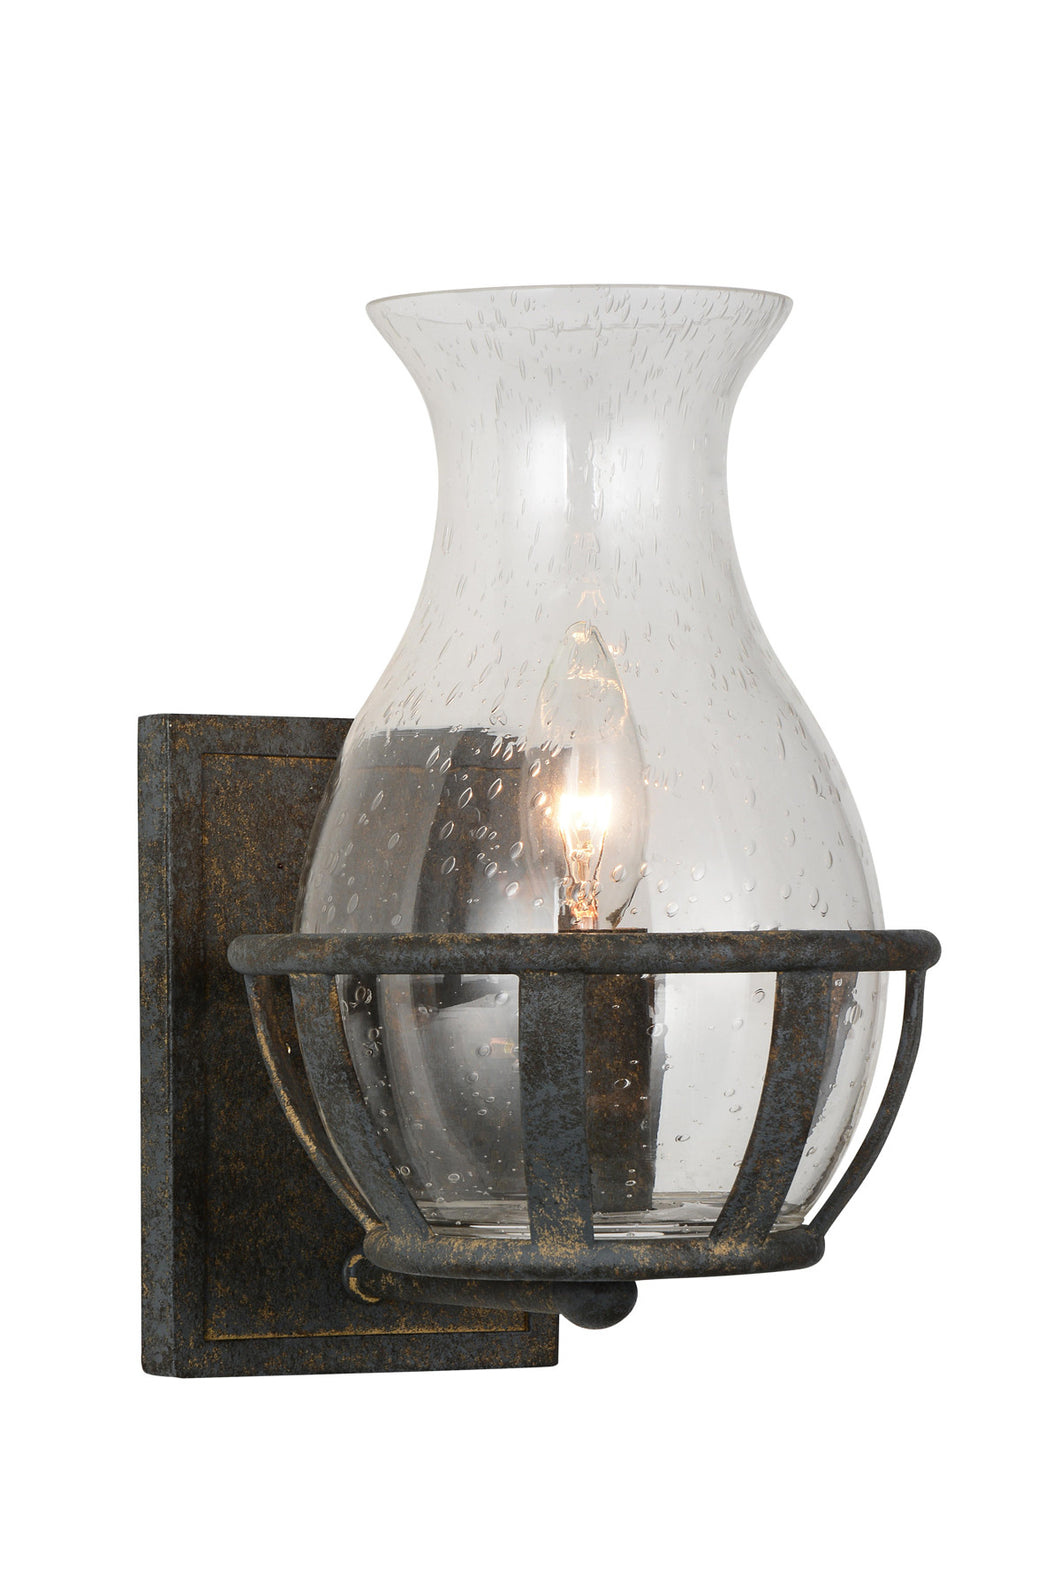 1 Light Wall Sconce with Antique Black finish